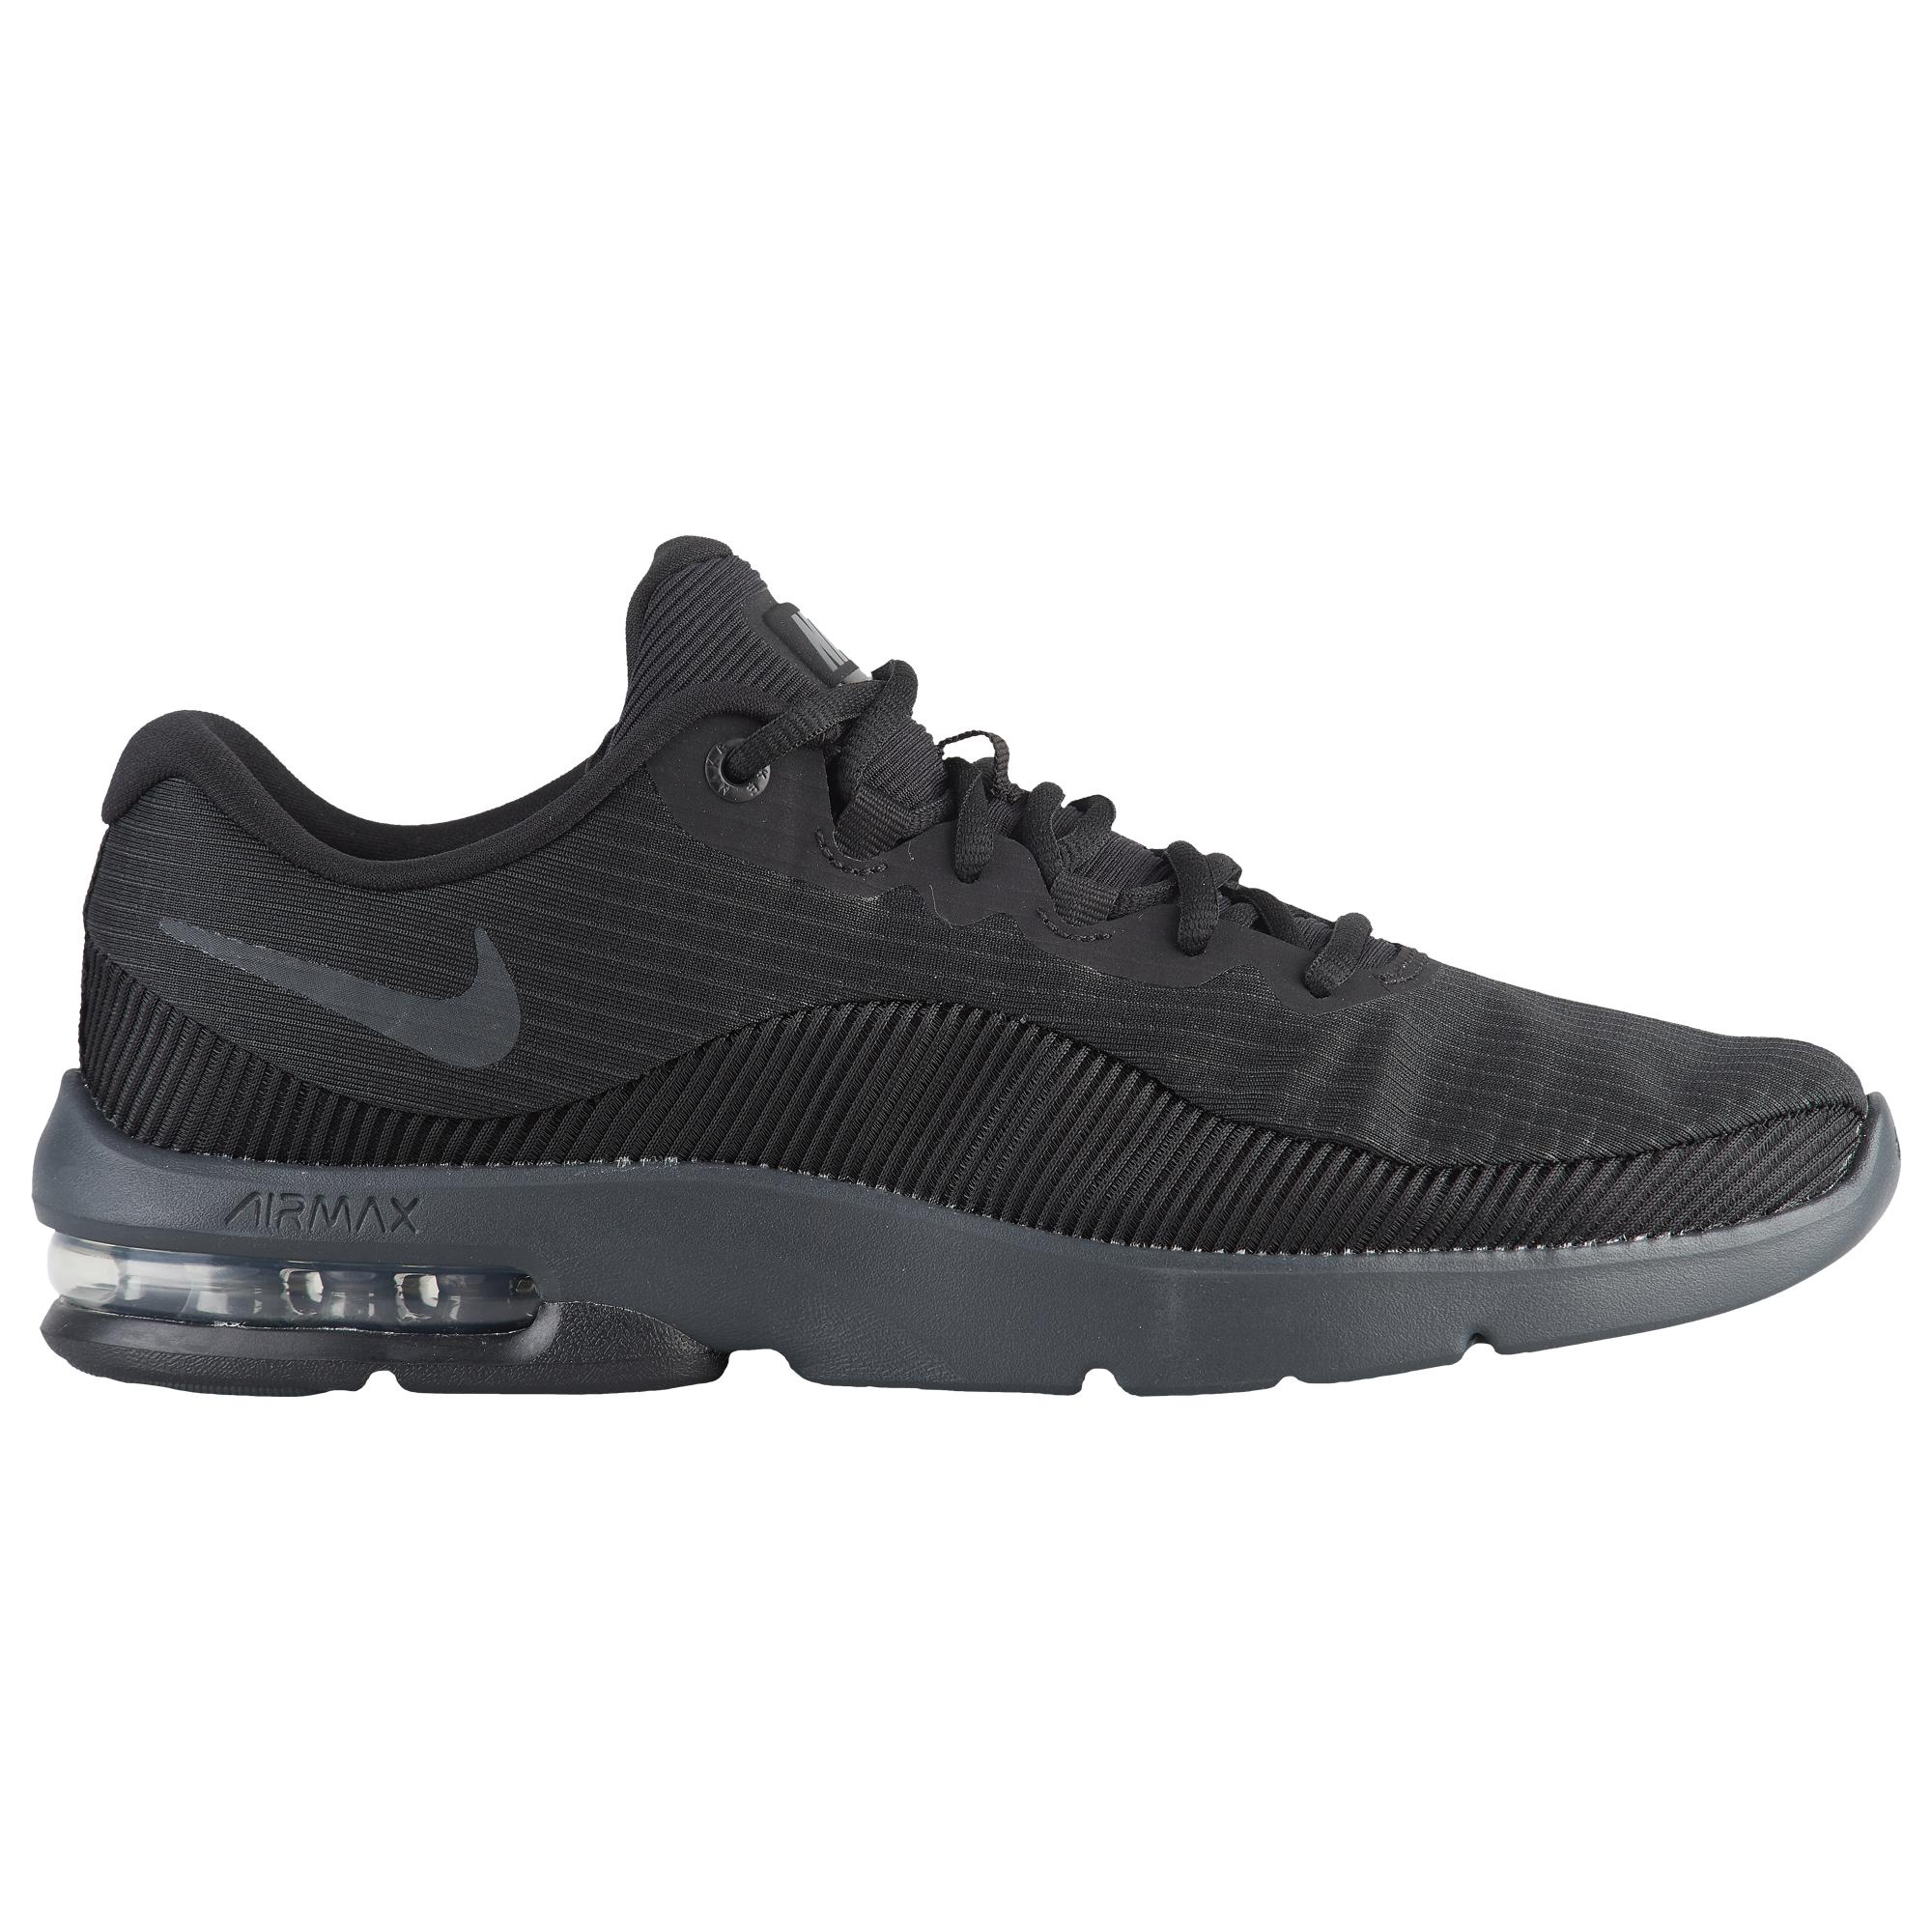 99b5aa7cf0 Nike Air Max Advantage 2 in Black for Men - Save 42% - Lyst